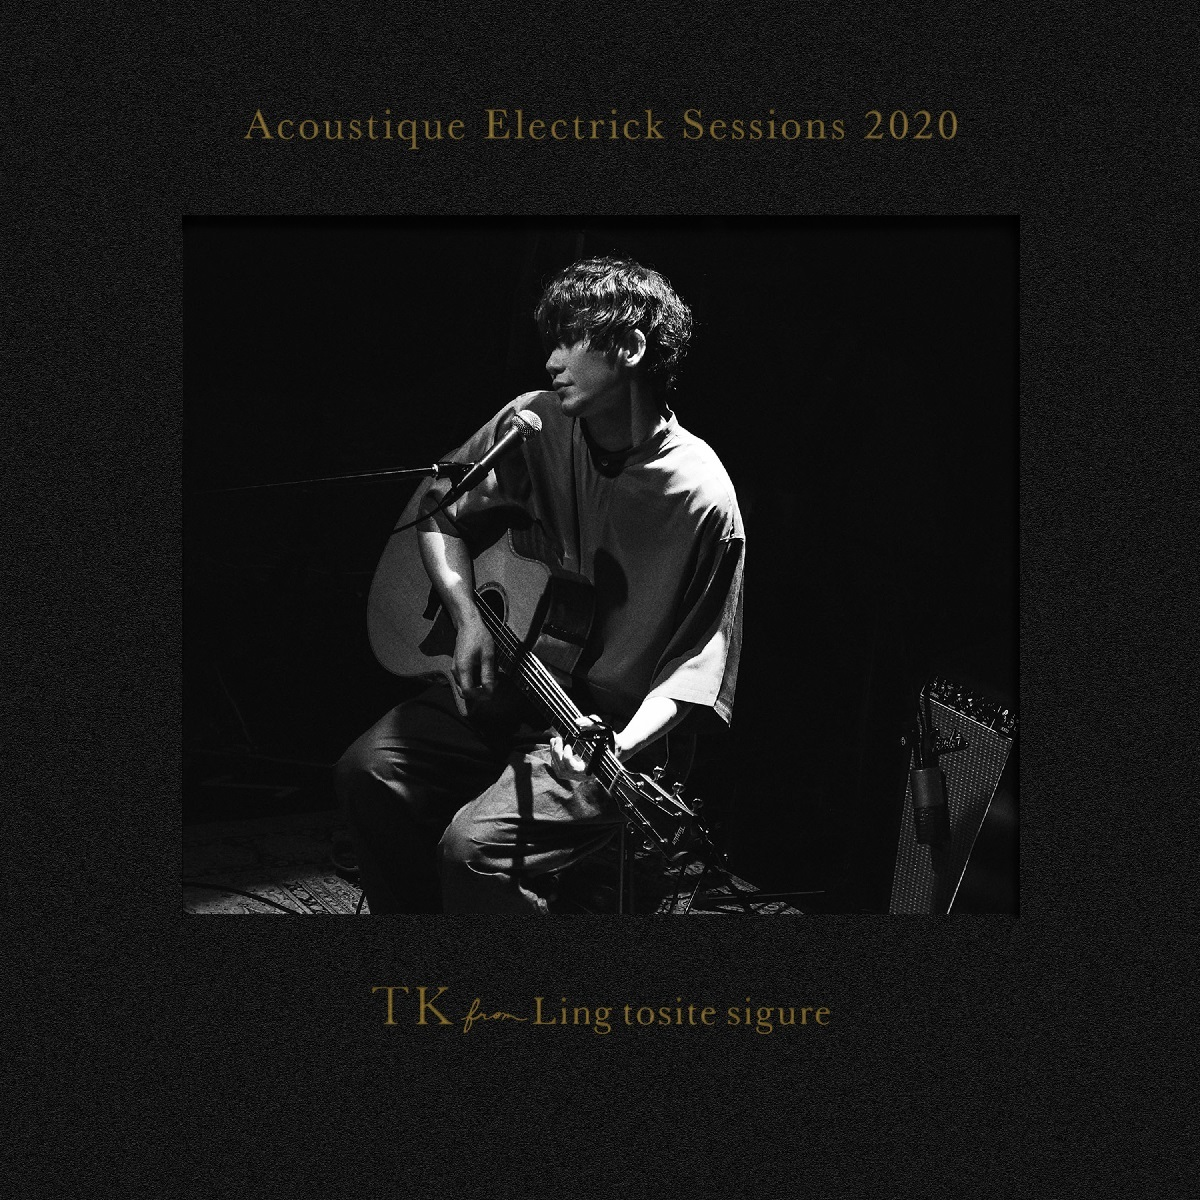 TK from 凛として時雨 LIVE Blu-ray+CD『Acoustique Electrick Sessions 2020』完全生産限定盤